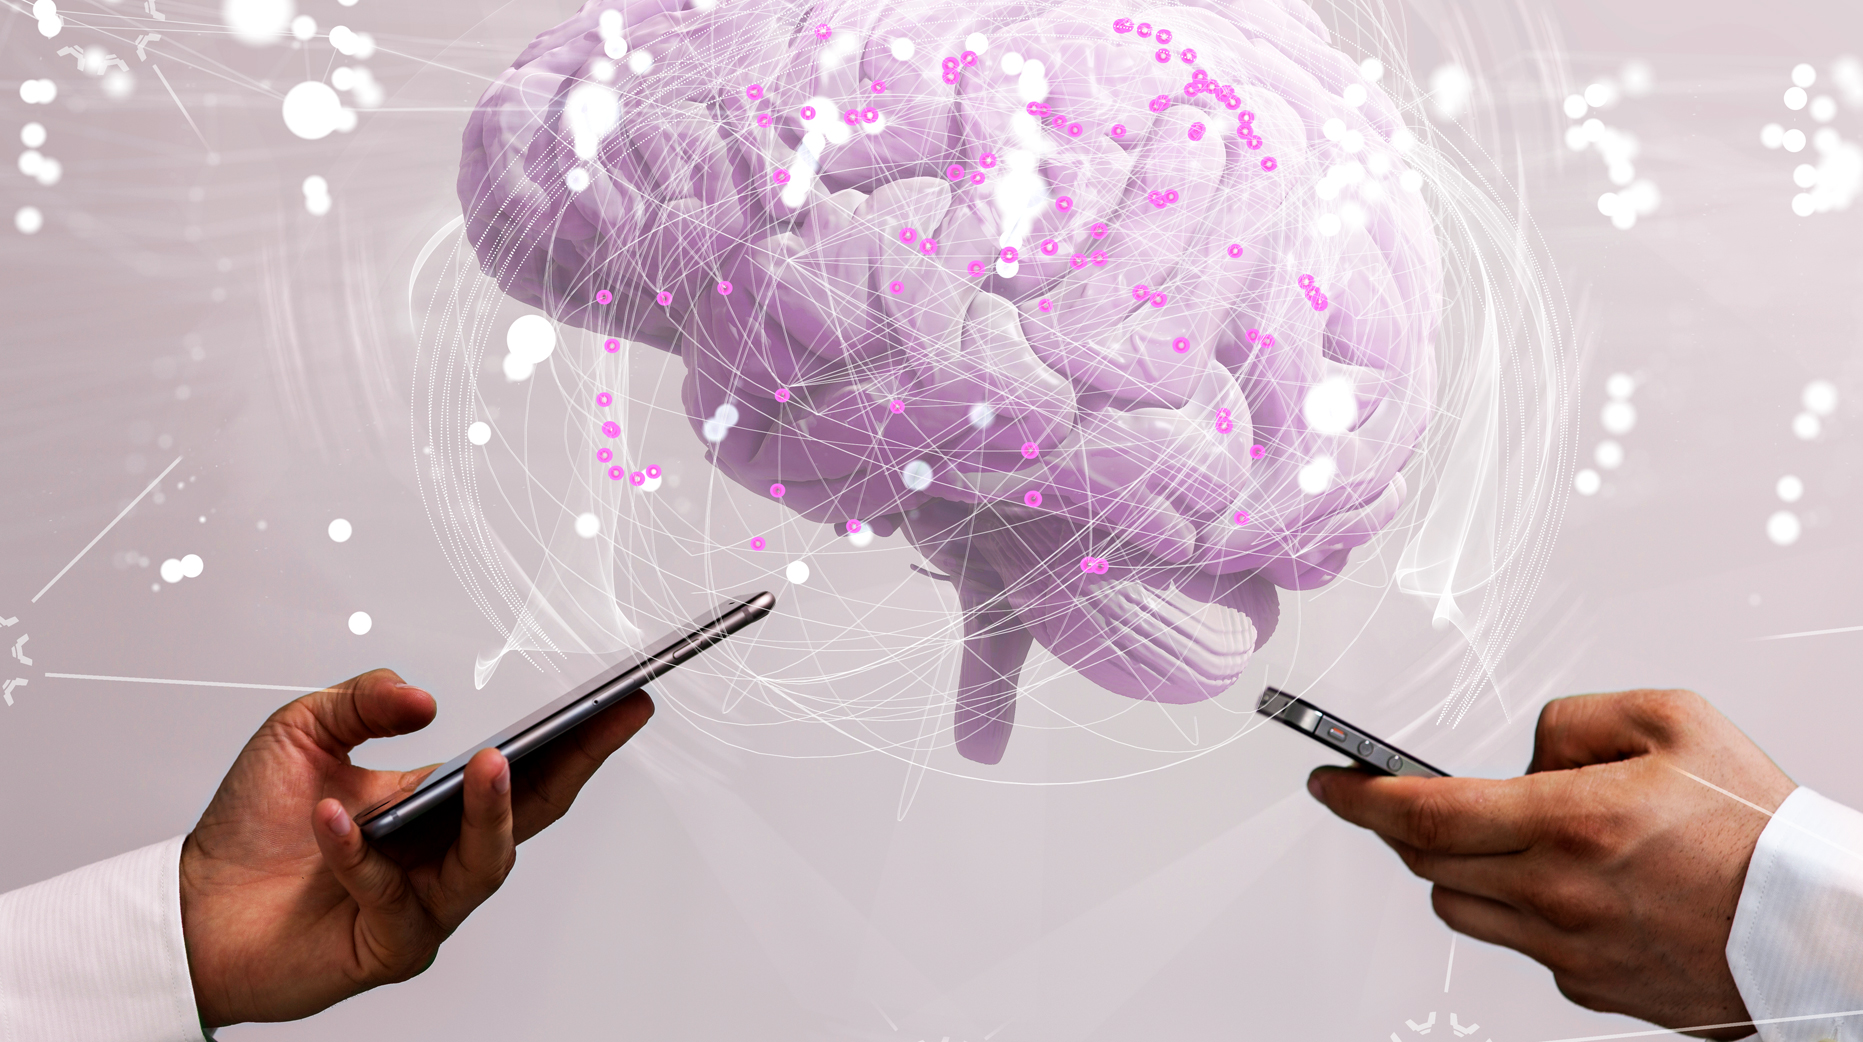 A-Resilient-Brain-In-A-Digital-Economy